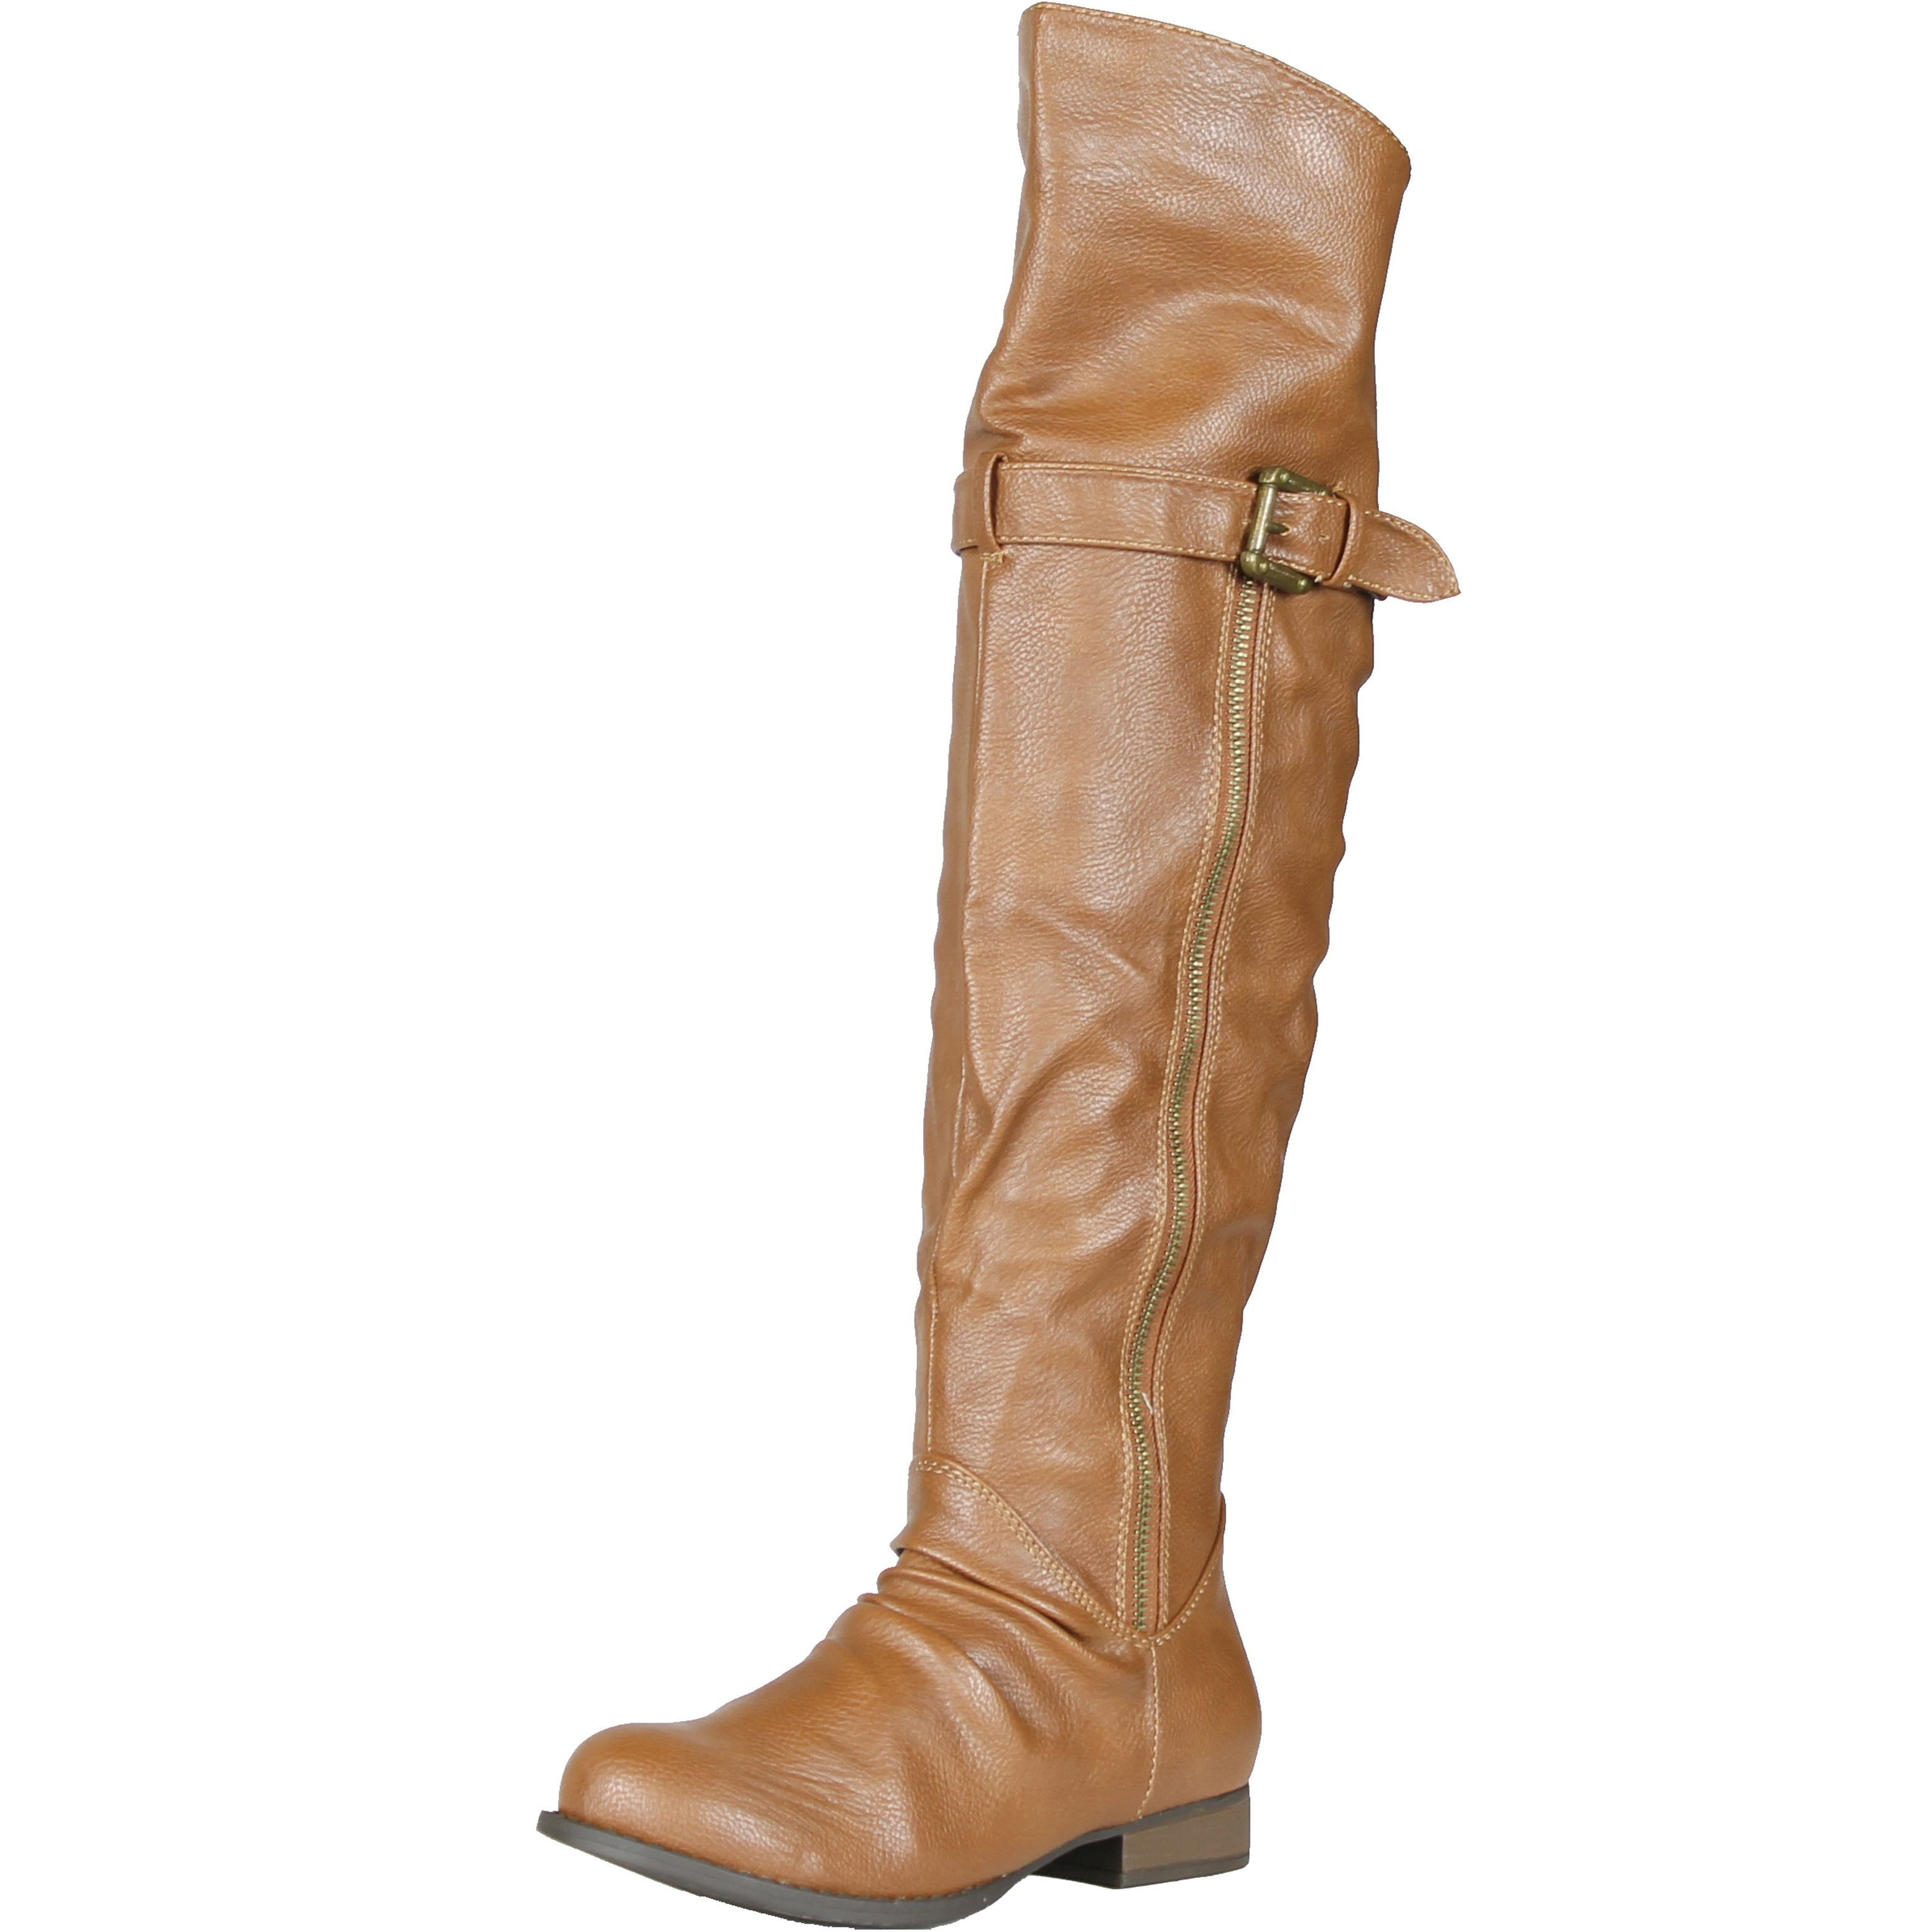 b60b42b13c41 Shop Bamboo Rascal-02 Classic Basic Casual Over The Knee High Buckle Detail  - Free Shipping Today - Overstock - 14383566